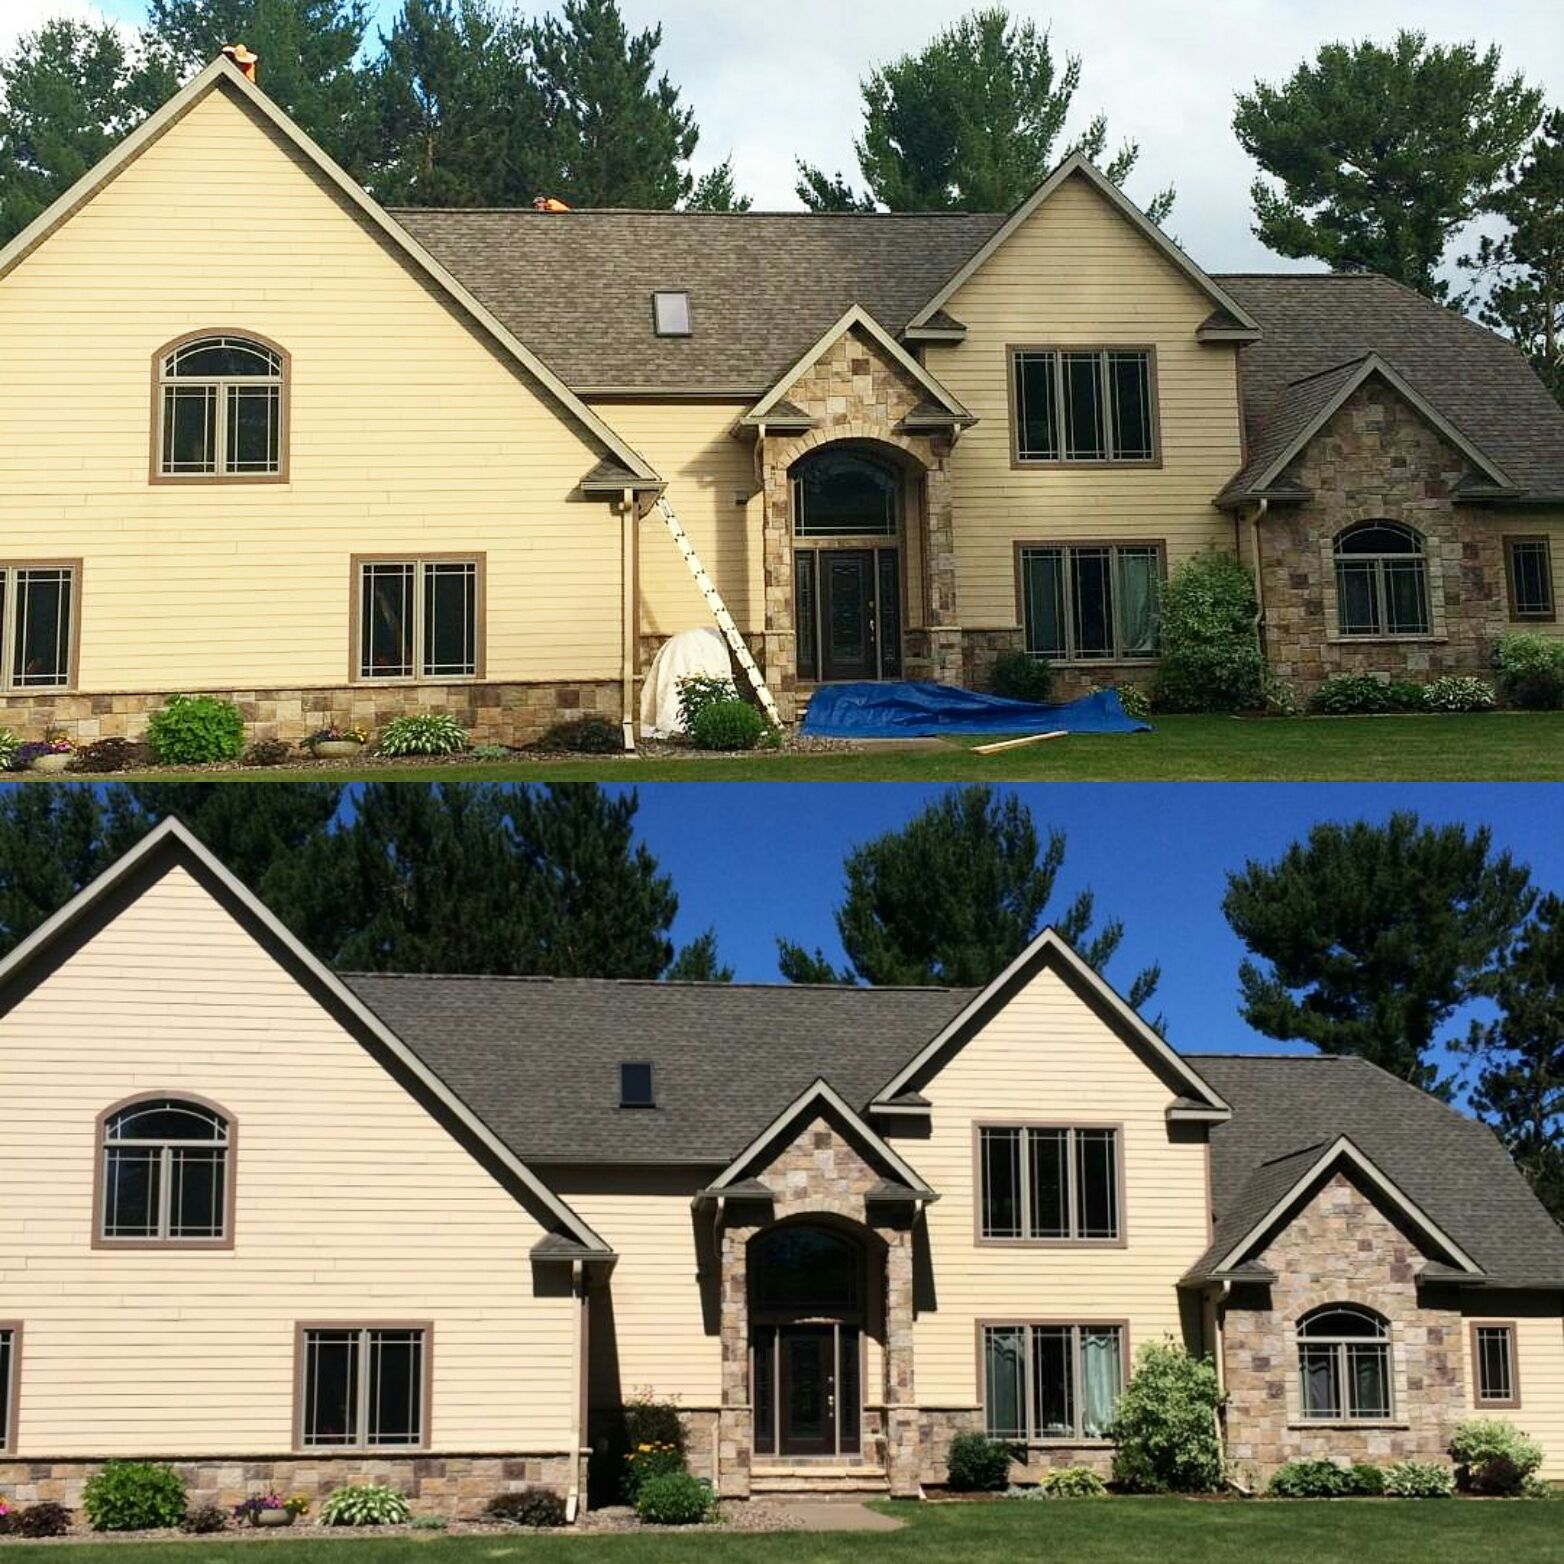 Best Before And After Using Gaf Timberline Natural Shadow 30 In 640 x 480